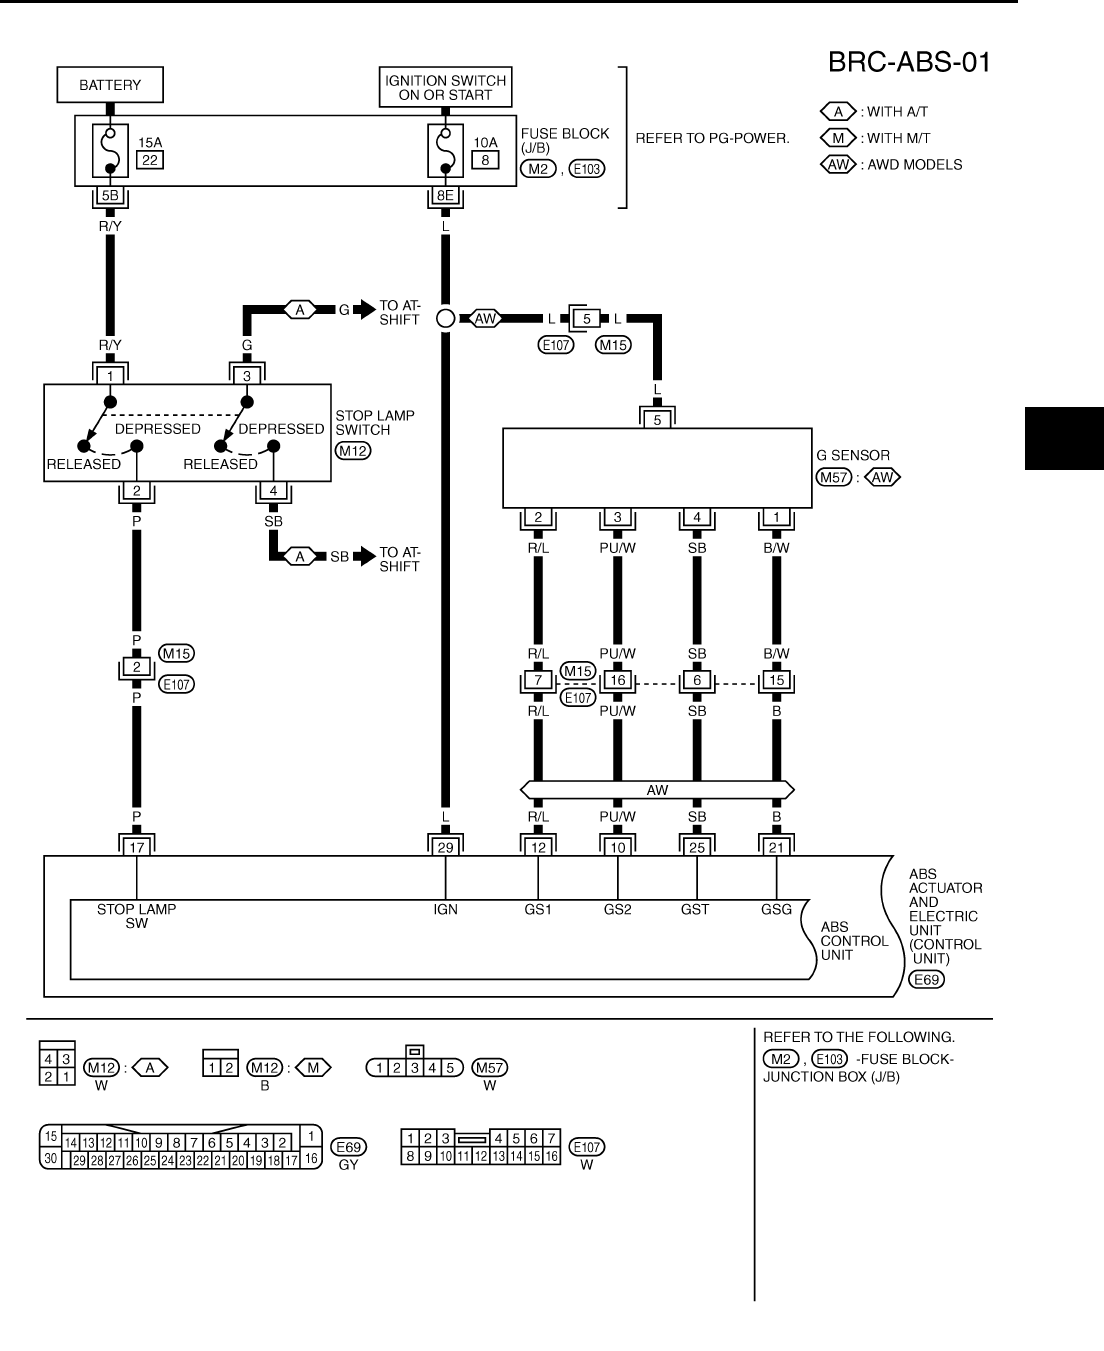 wiring diagram nissan x trail 2004 | wiring diagram nissan x trail wiring diagram